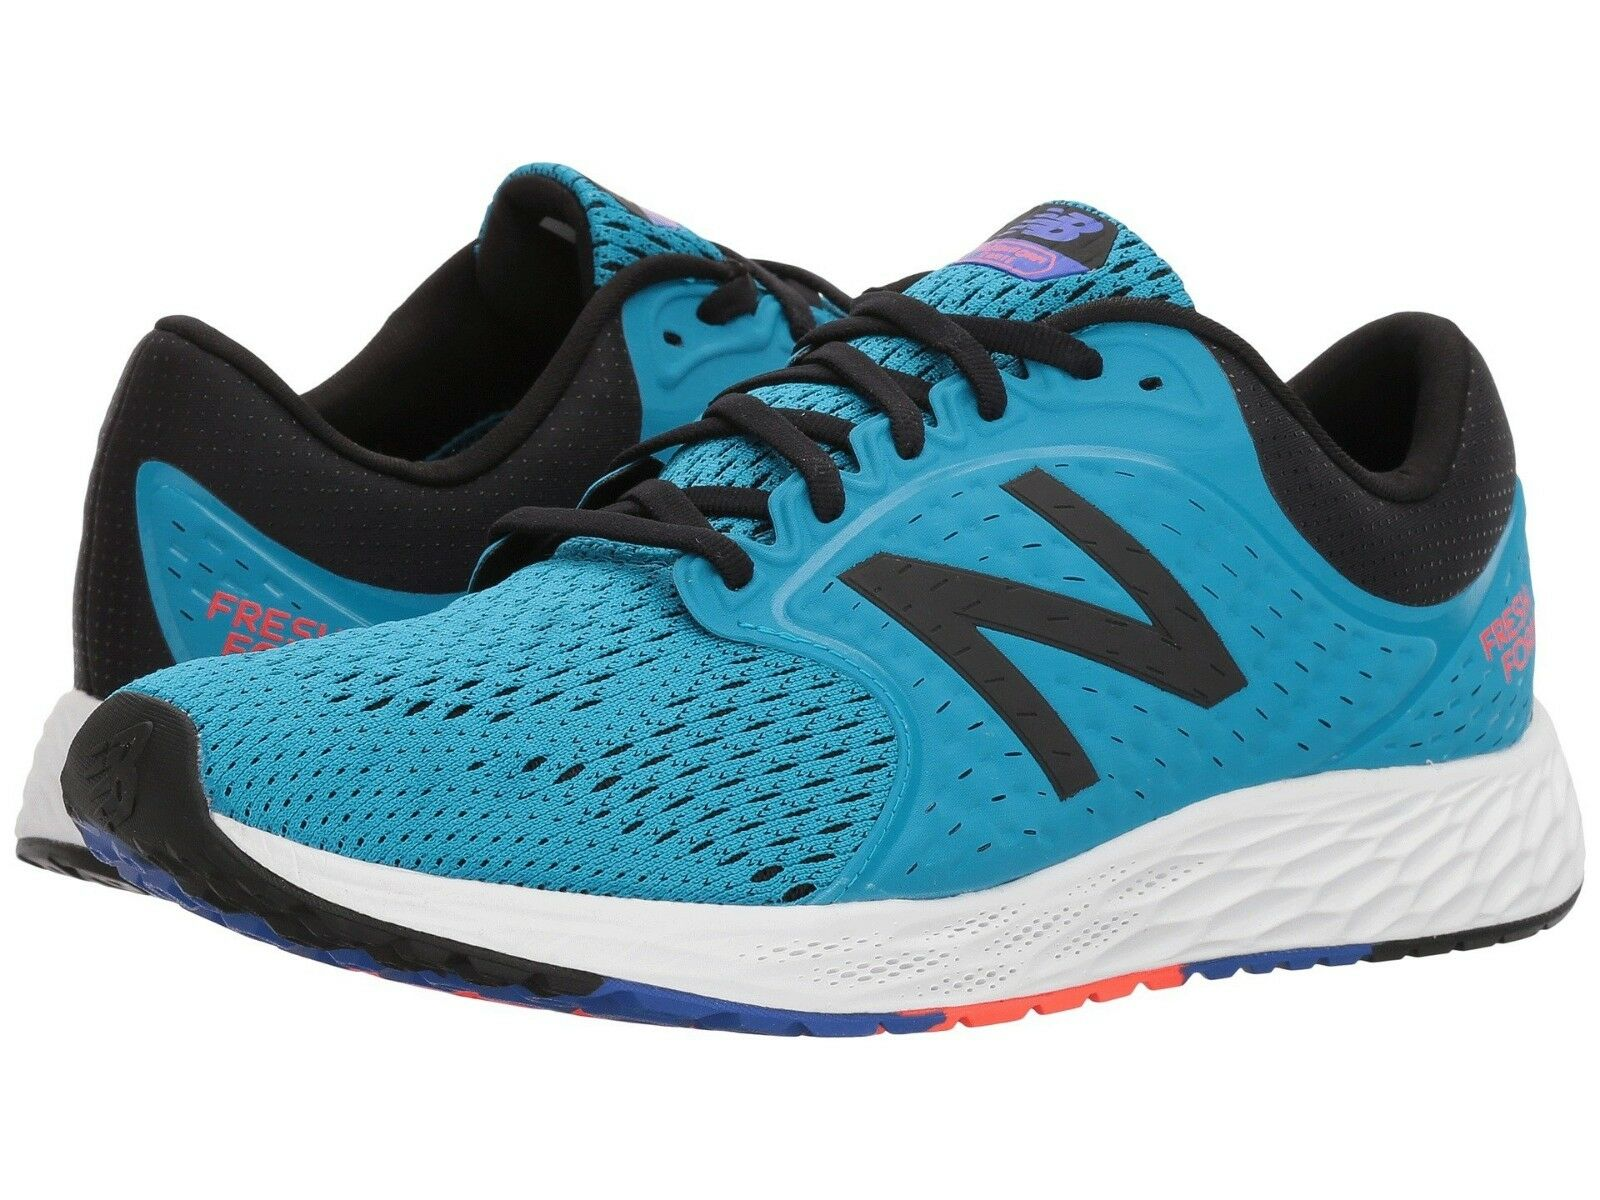 New Balance Men's Running shoes  ZANTEv4 Fresh Foam Maldives bluee Black Flame 10